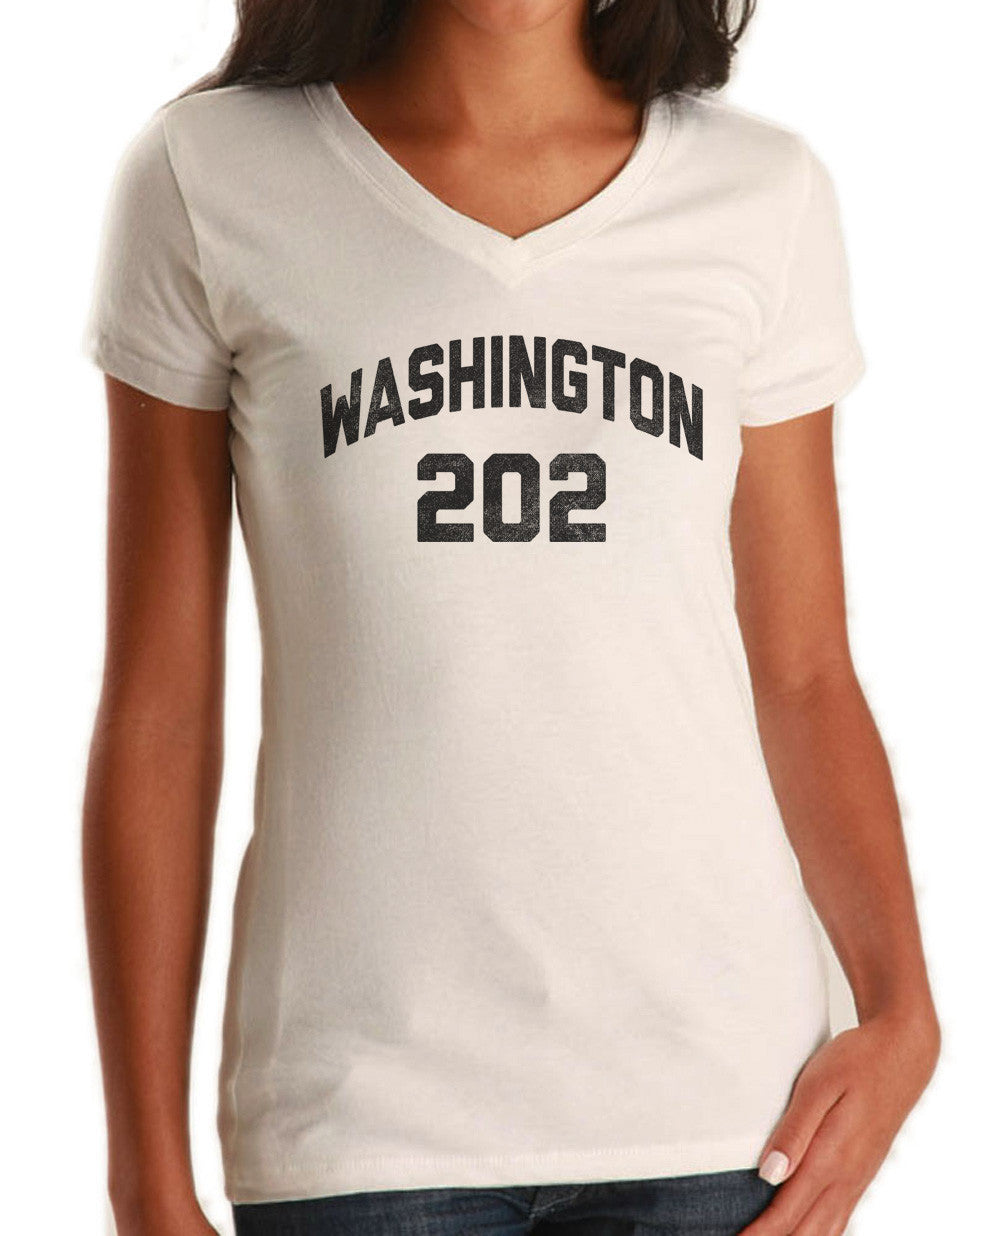 Women's Washington DC 202 Area Code Vneck T-Shirt